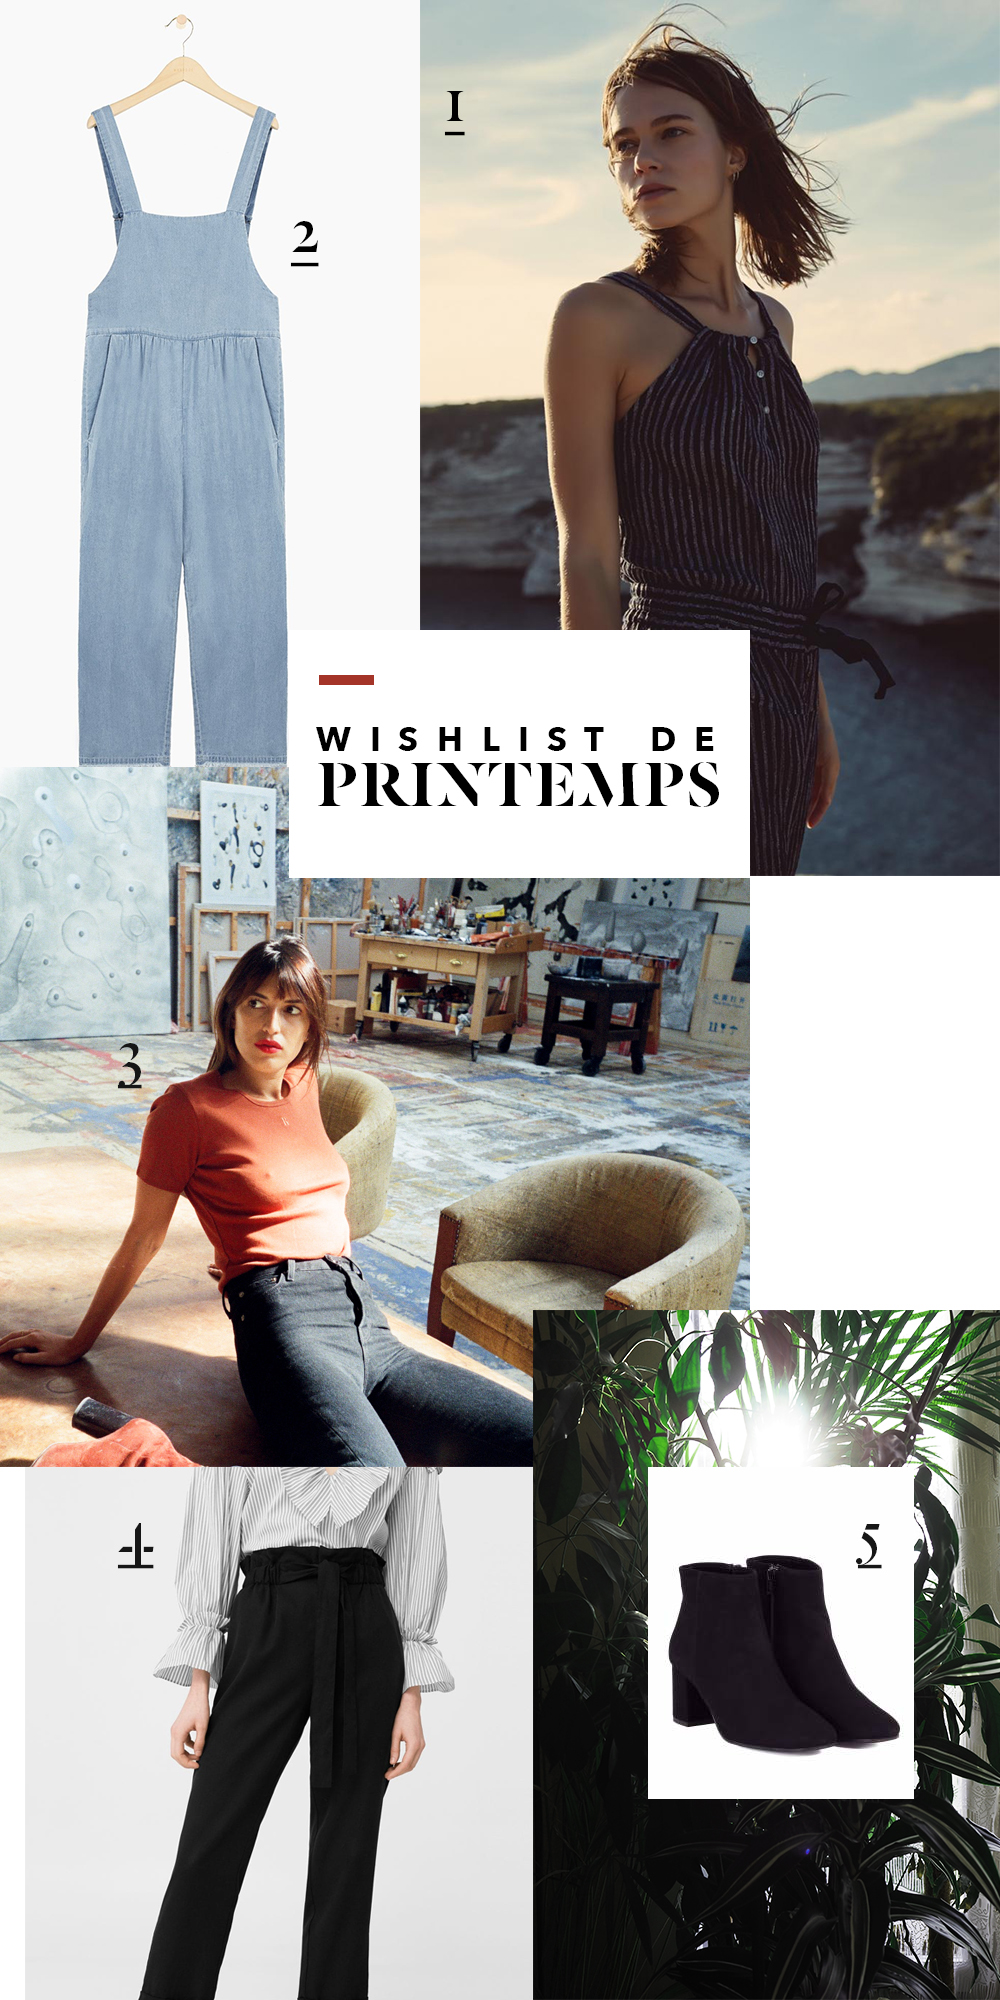 Wishlist-printemps